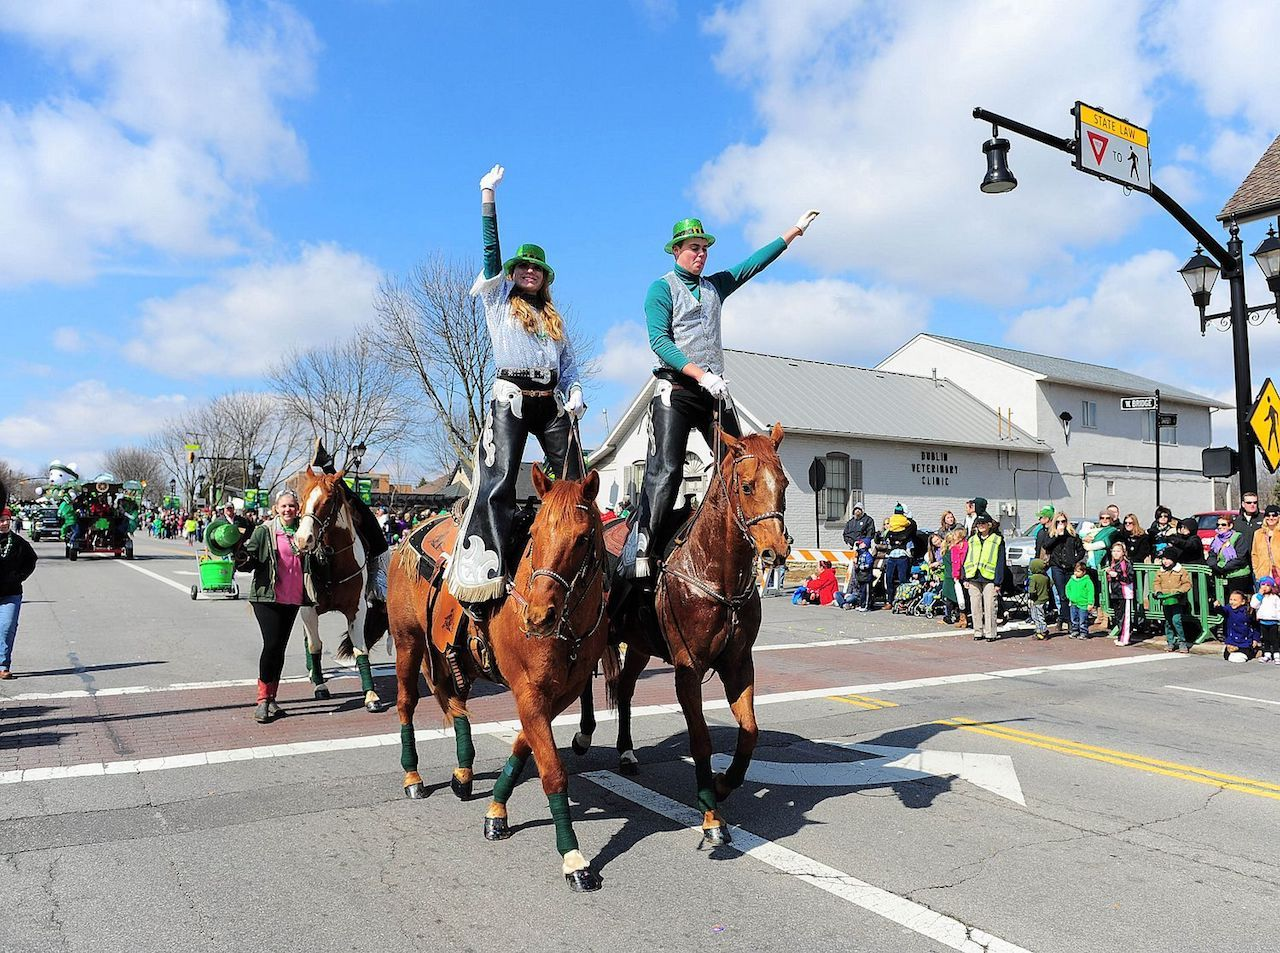 St Paddys Day paraders standing on horses